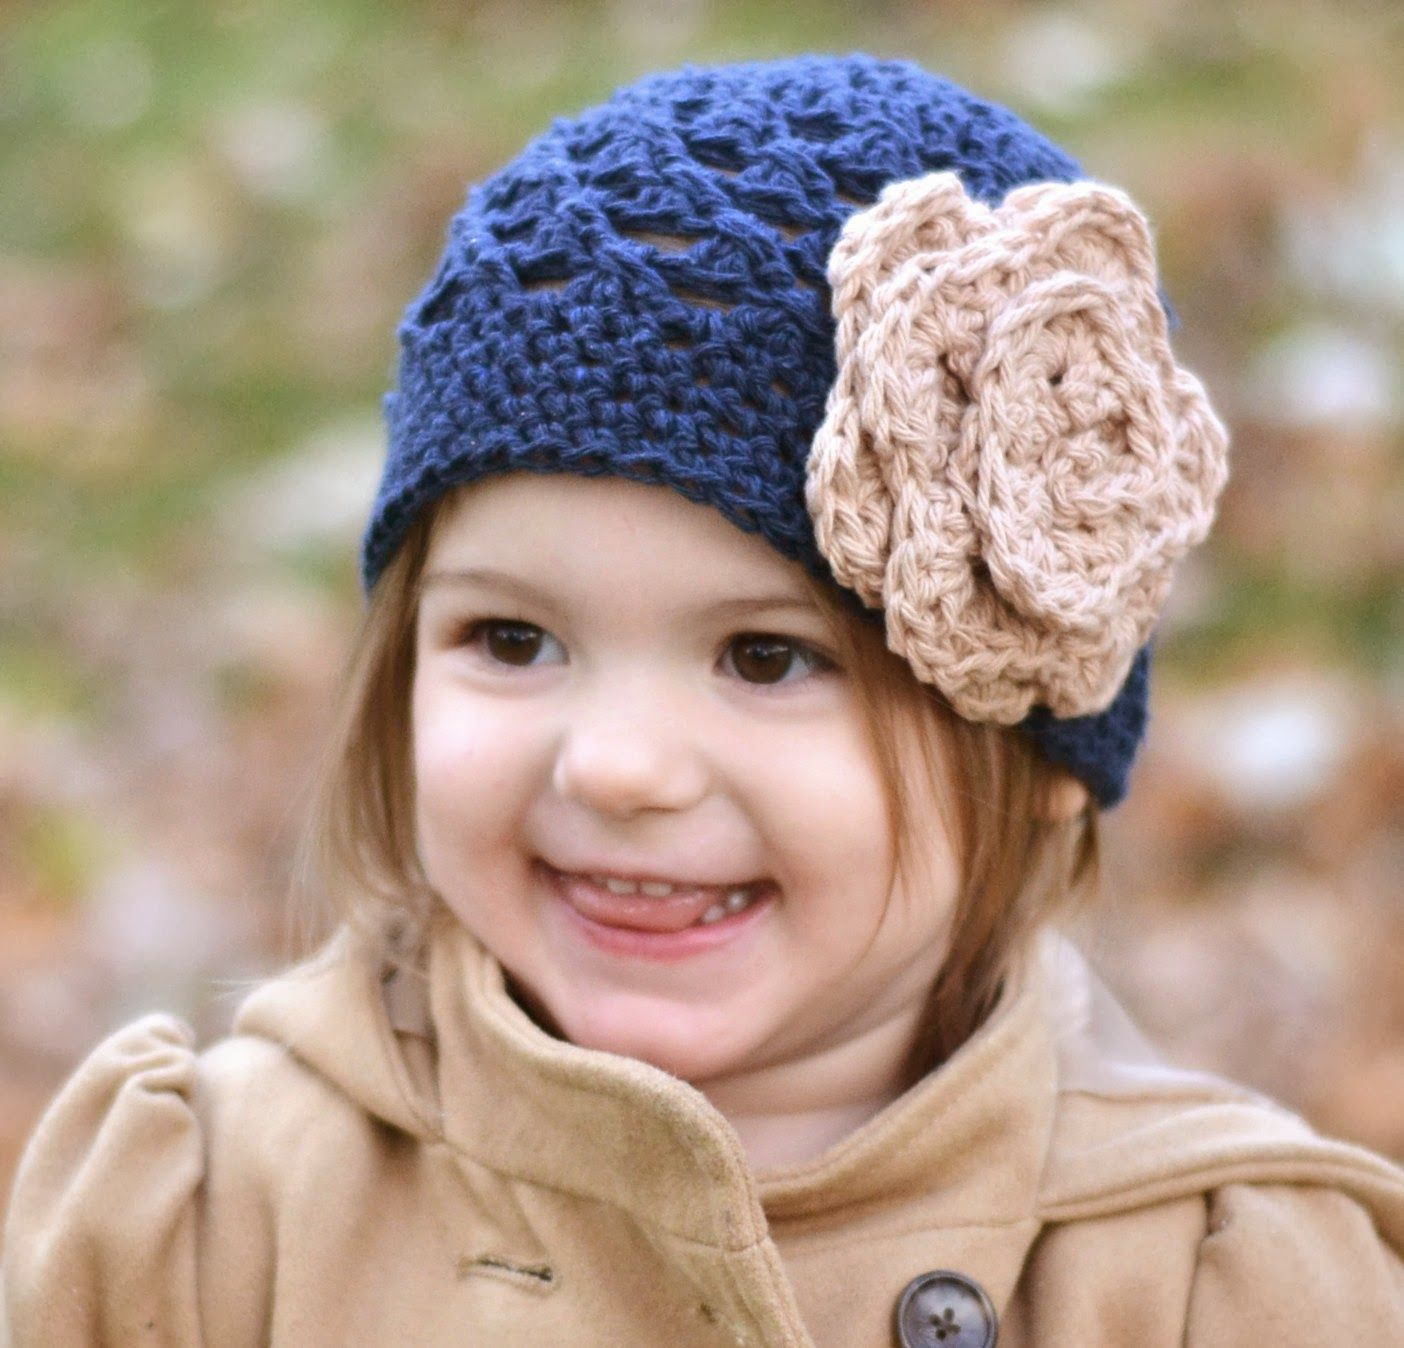 Baby Girl Wallpaper My Blog | HD Wallpapers | Pinterest | Baby girl ...